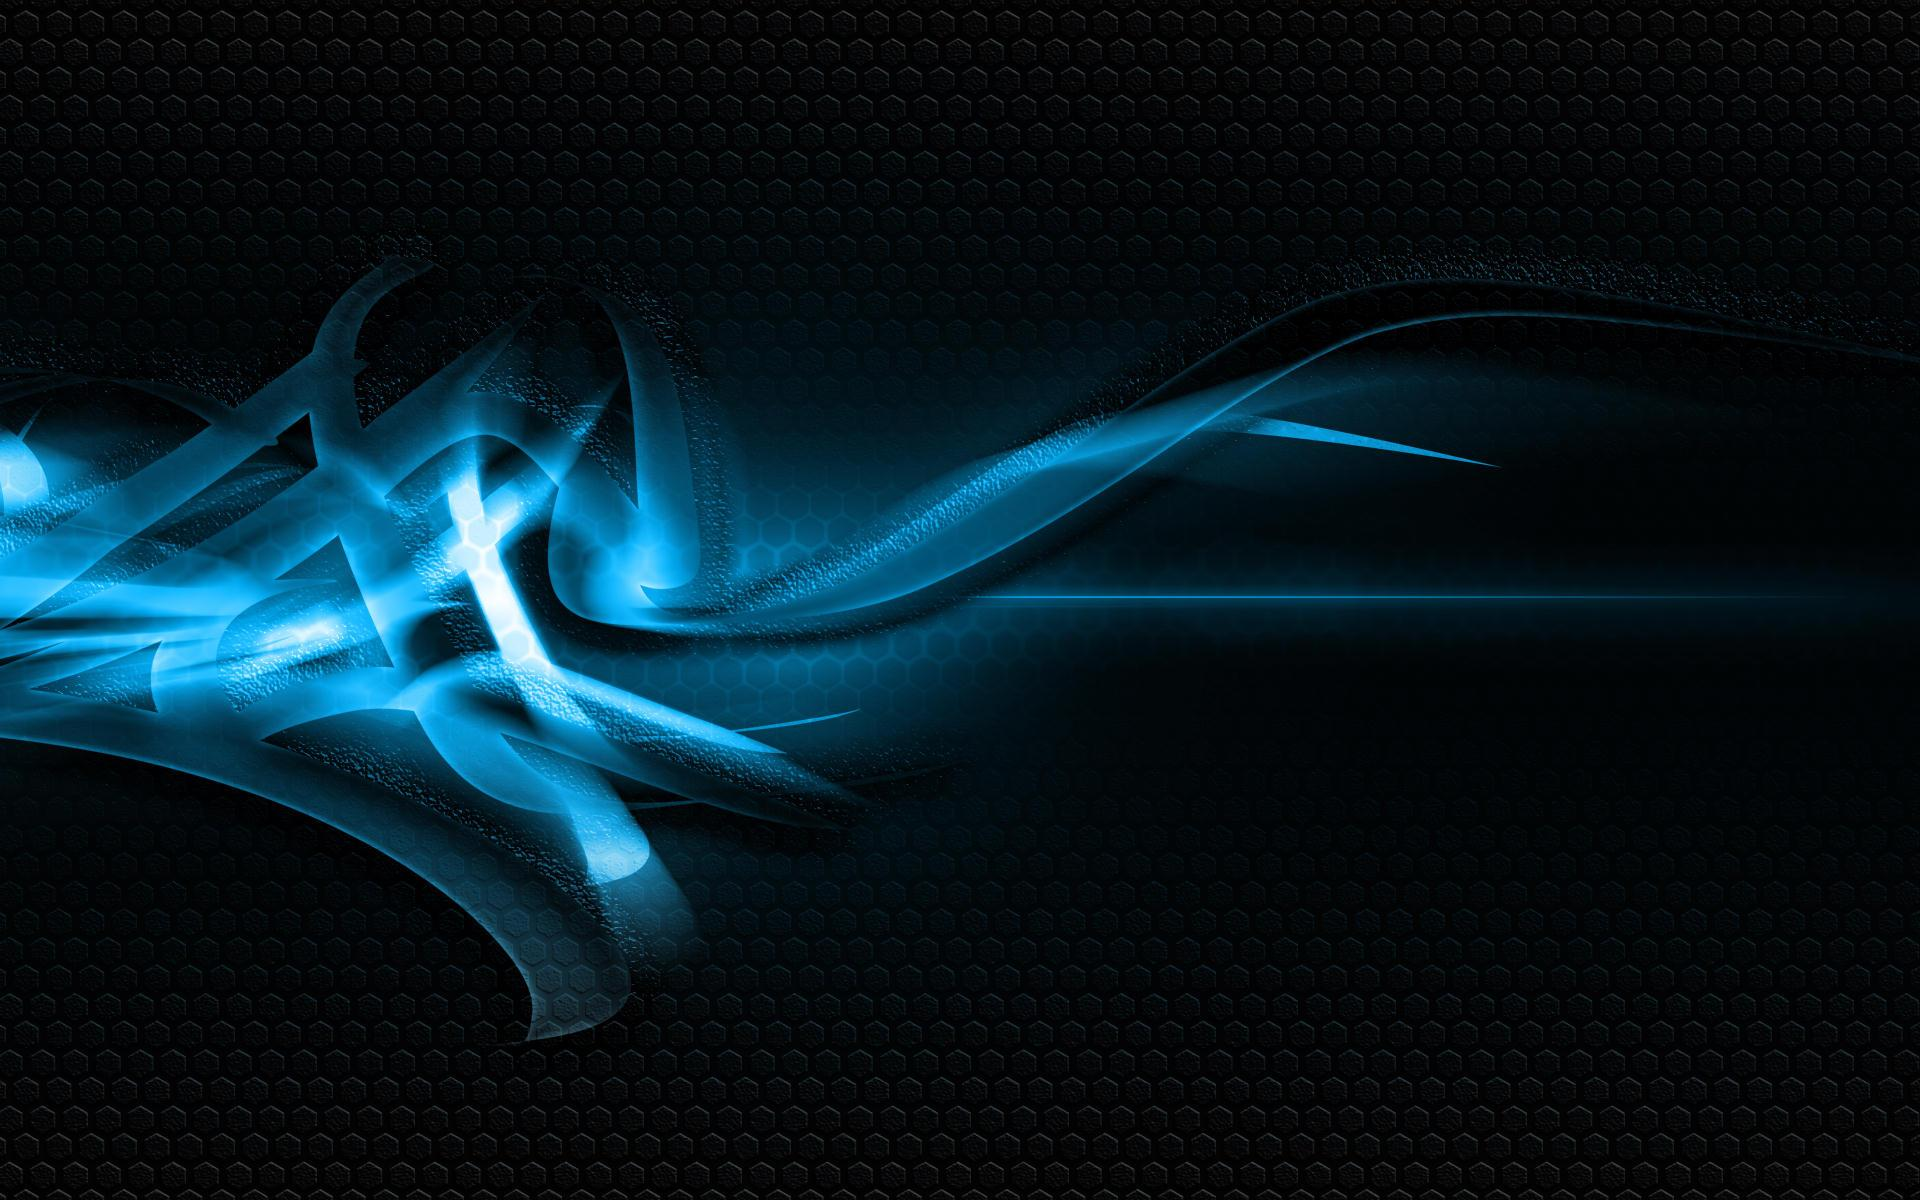 Abstract - Blue Wallpaper